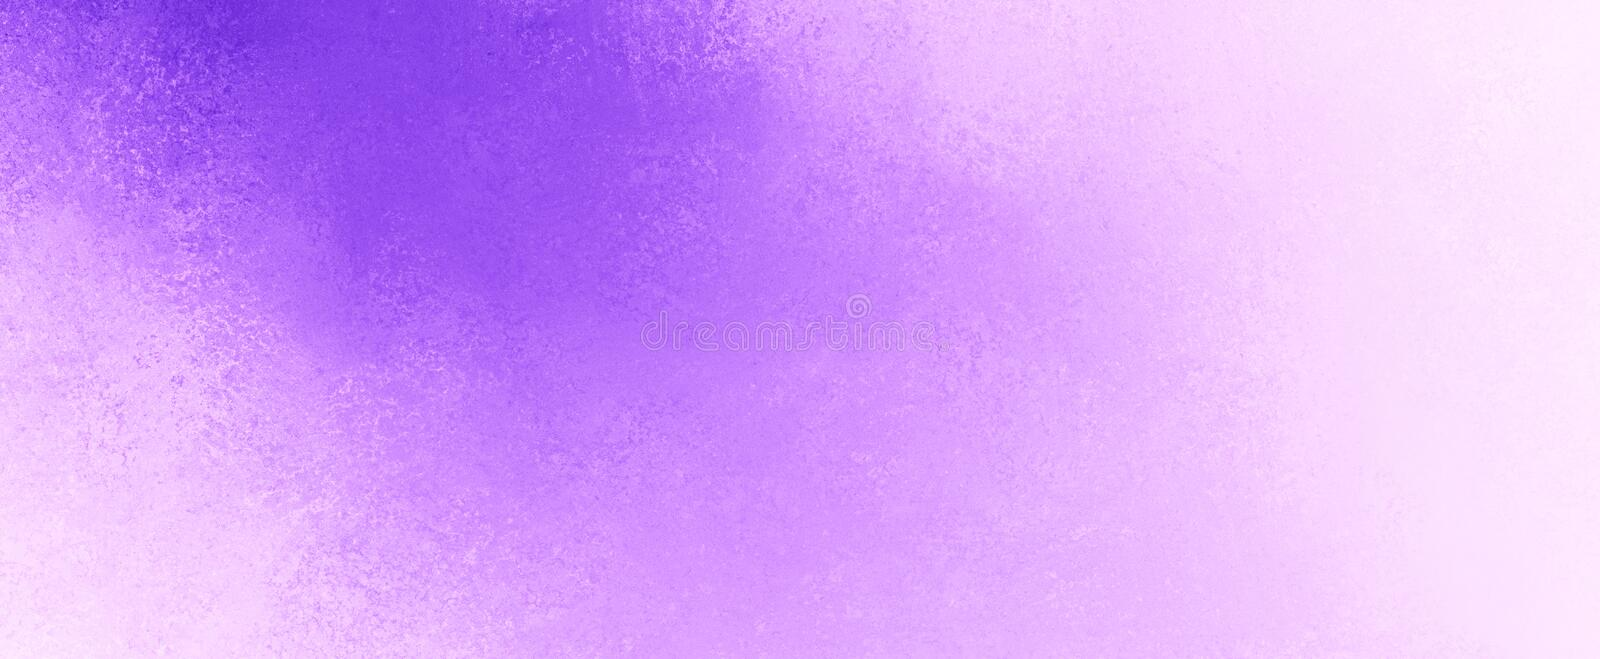 Purple color splash in diagonal light shaft or beam style design on white background with grunge texture. Pastel colors royalty free stock image